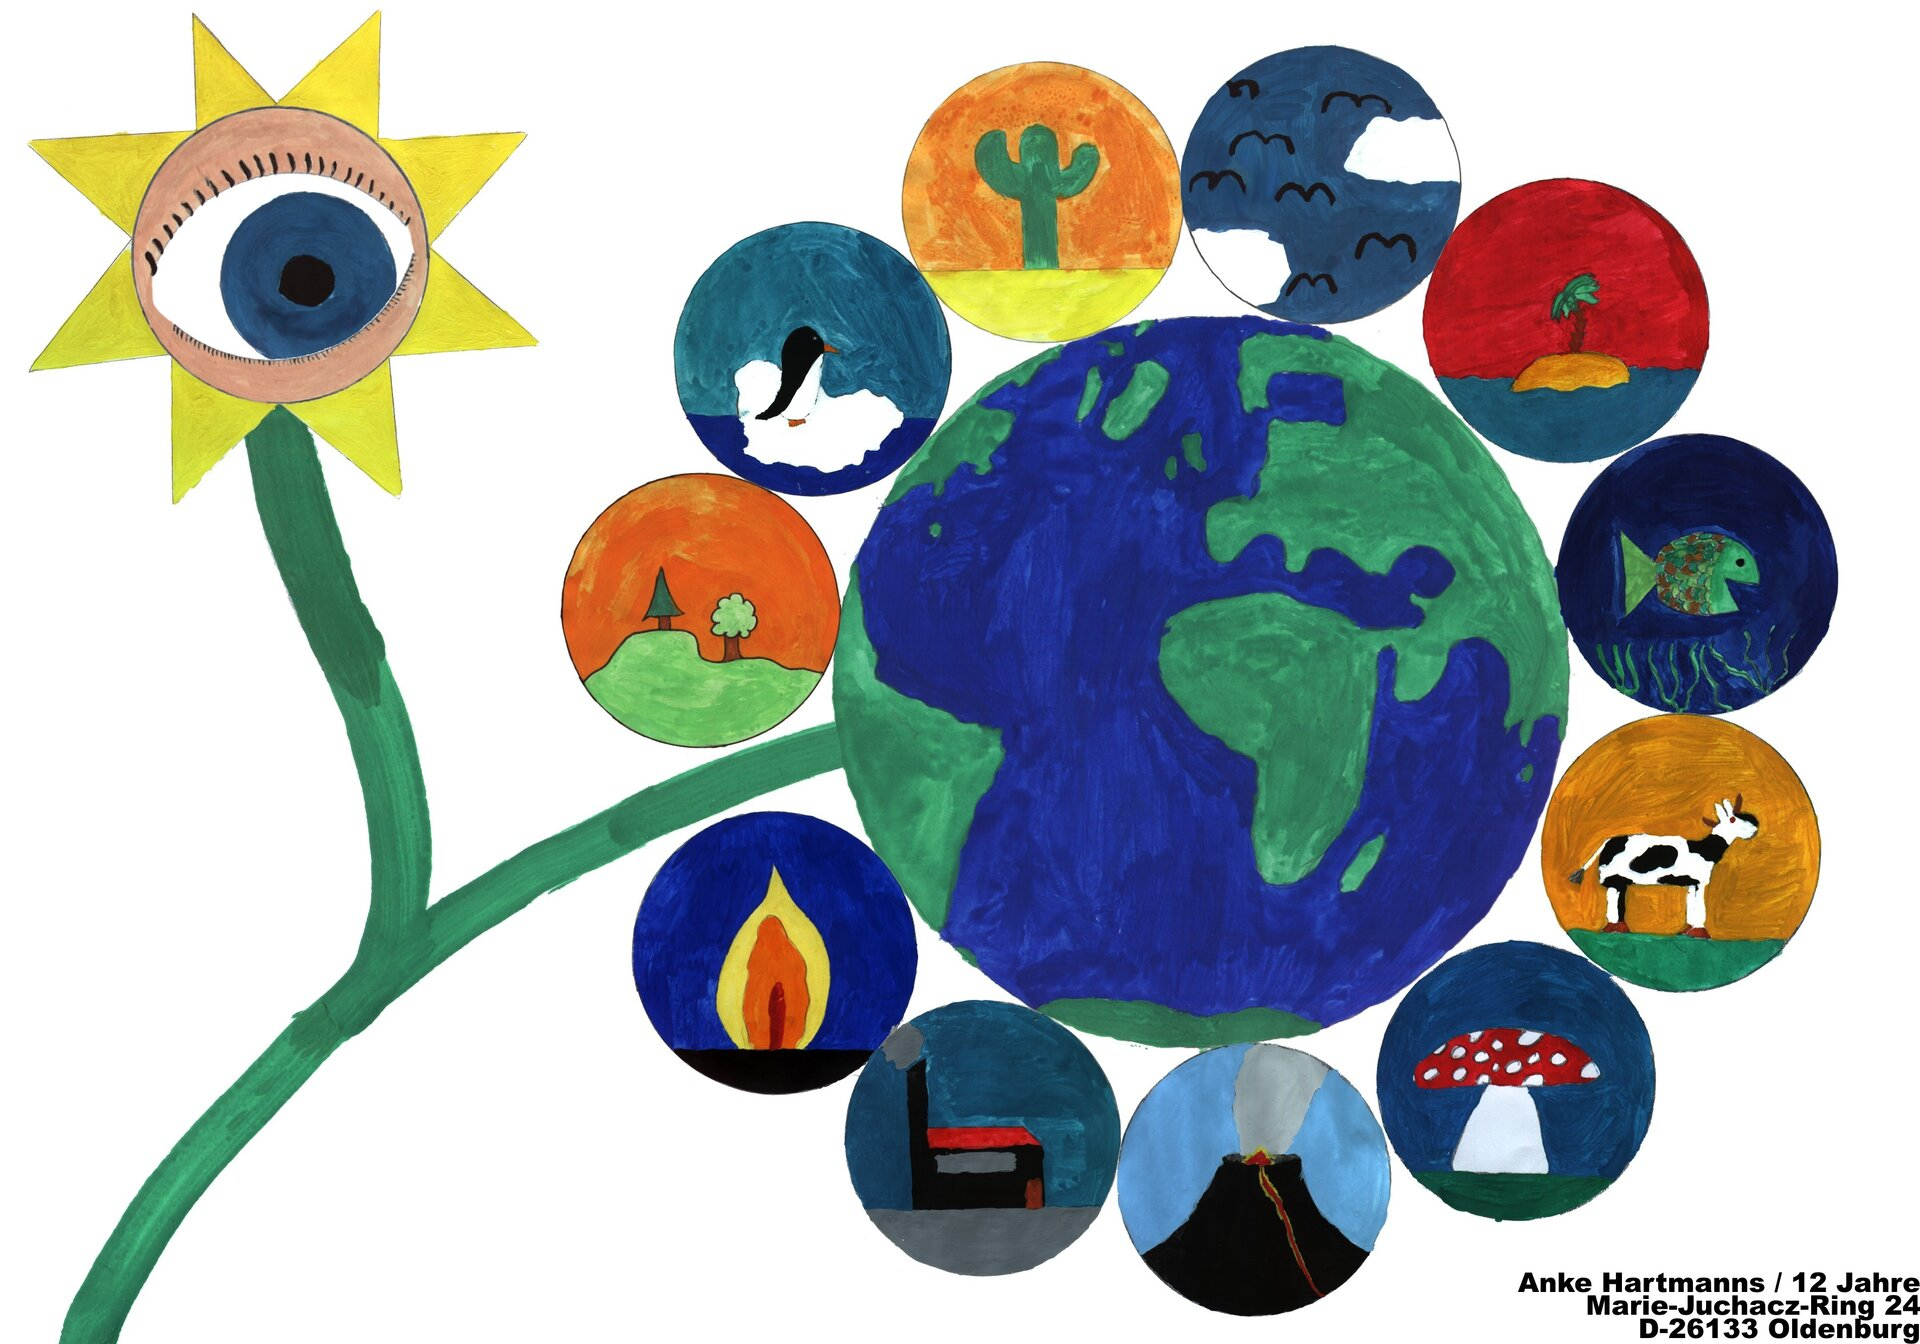 Anke Hartmanns, Germany, winner of ESA's Earth Flag competition